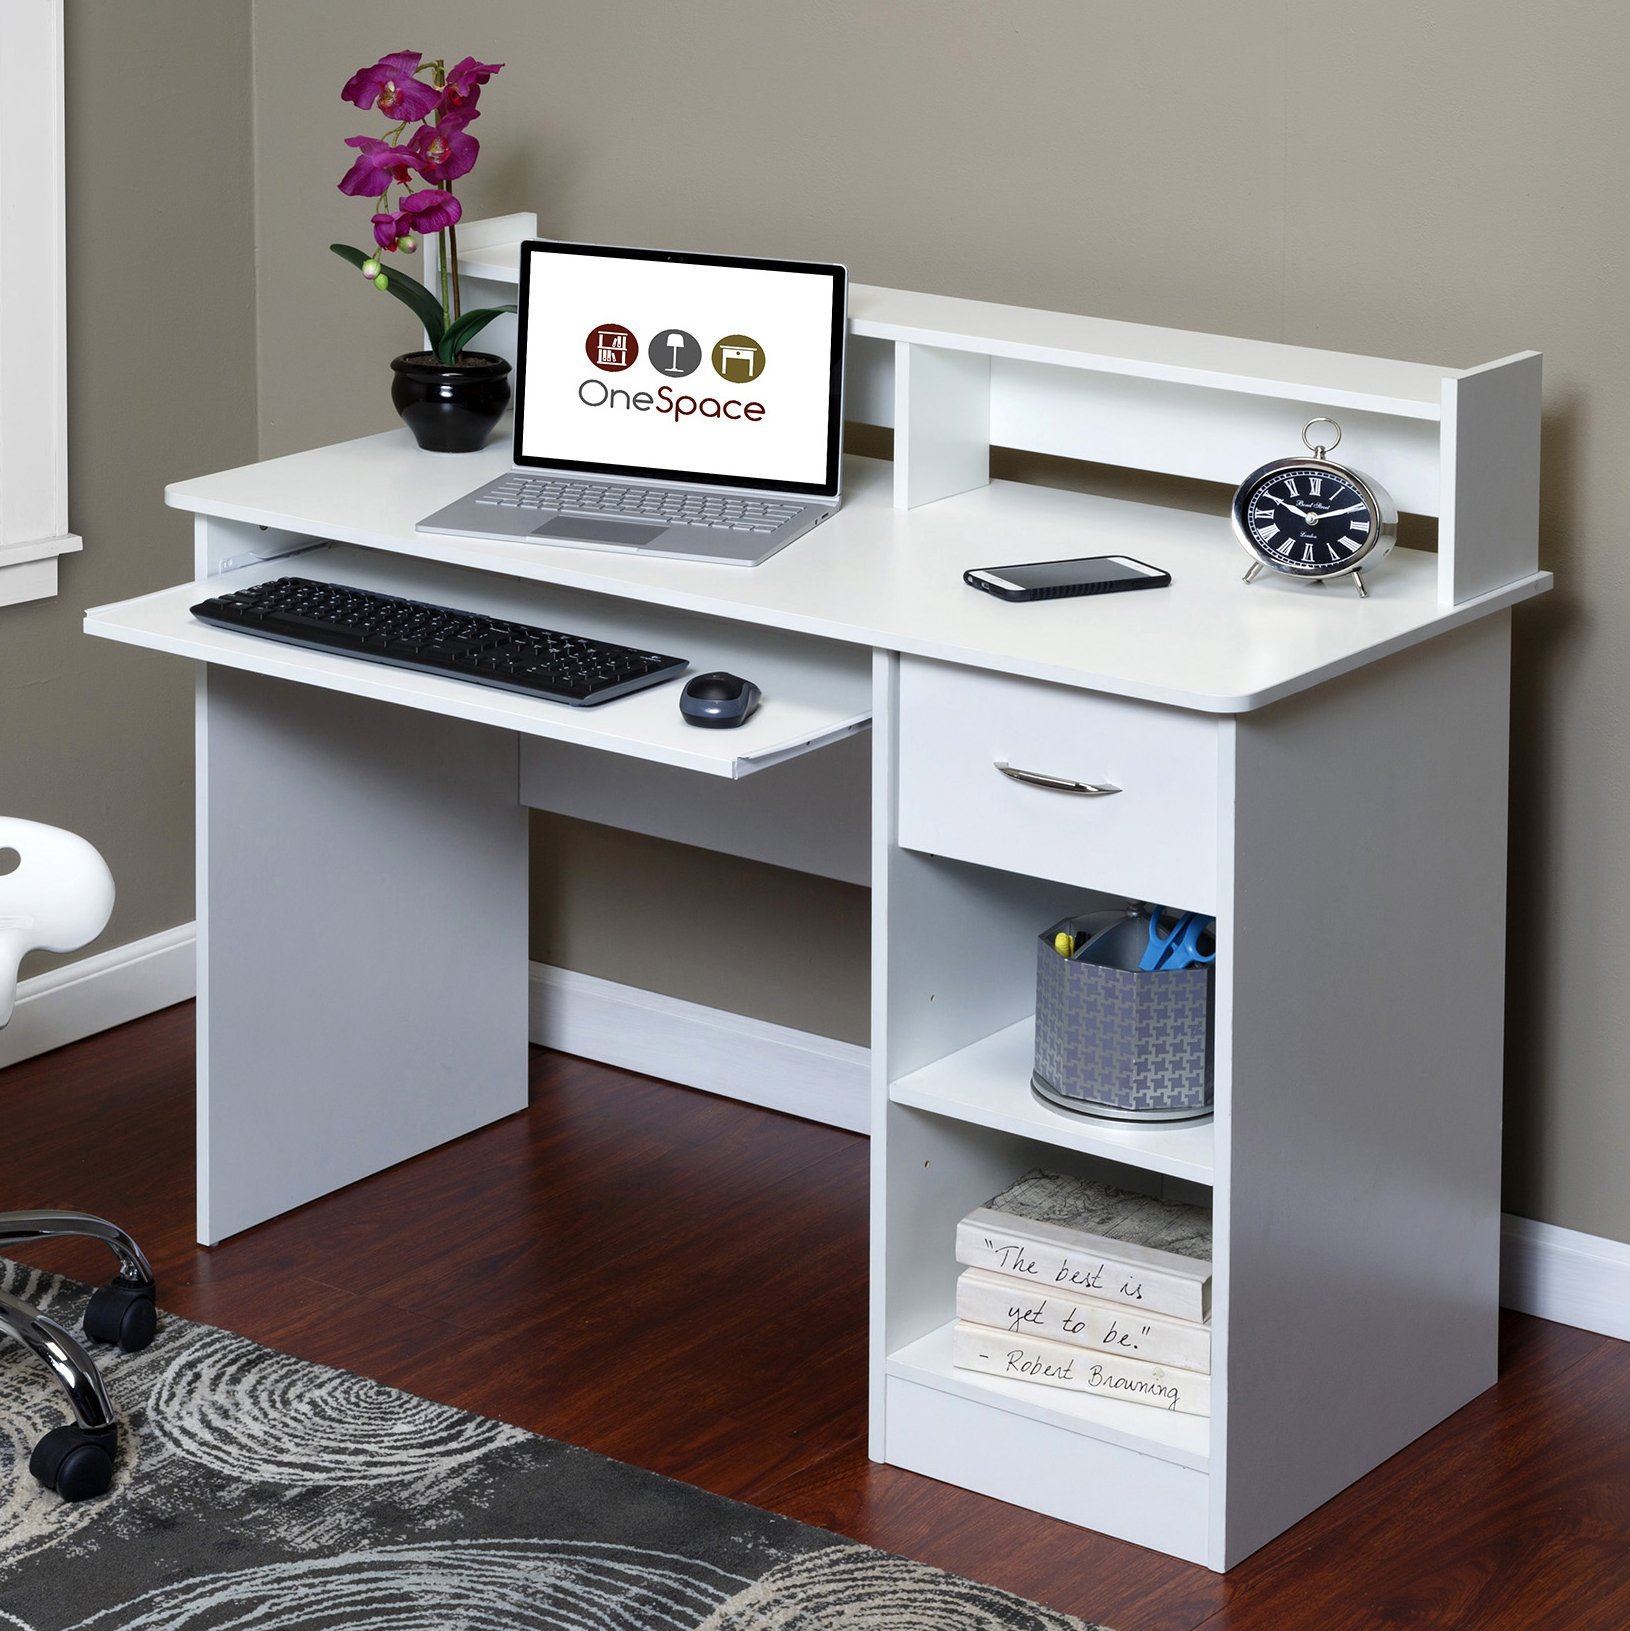 OneSpace 50-LD0101 Essential Computer Desk, Hutch with Pull-Out Keyboard, White